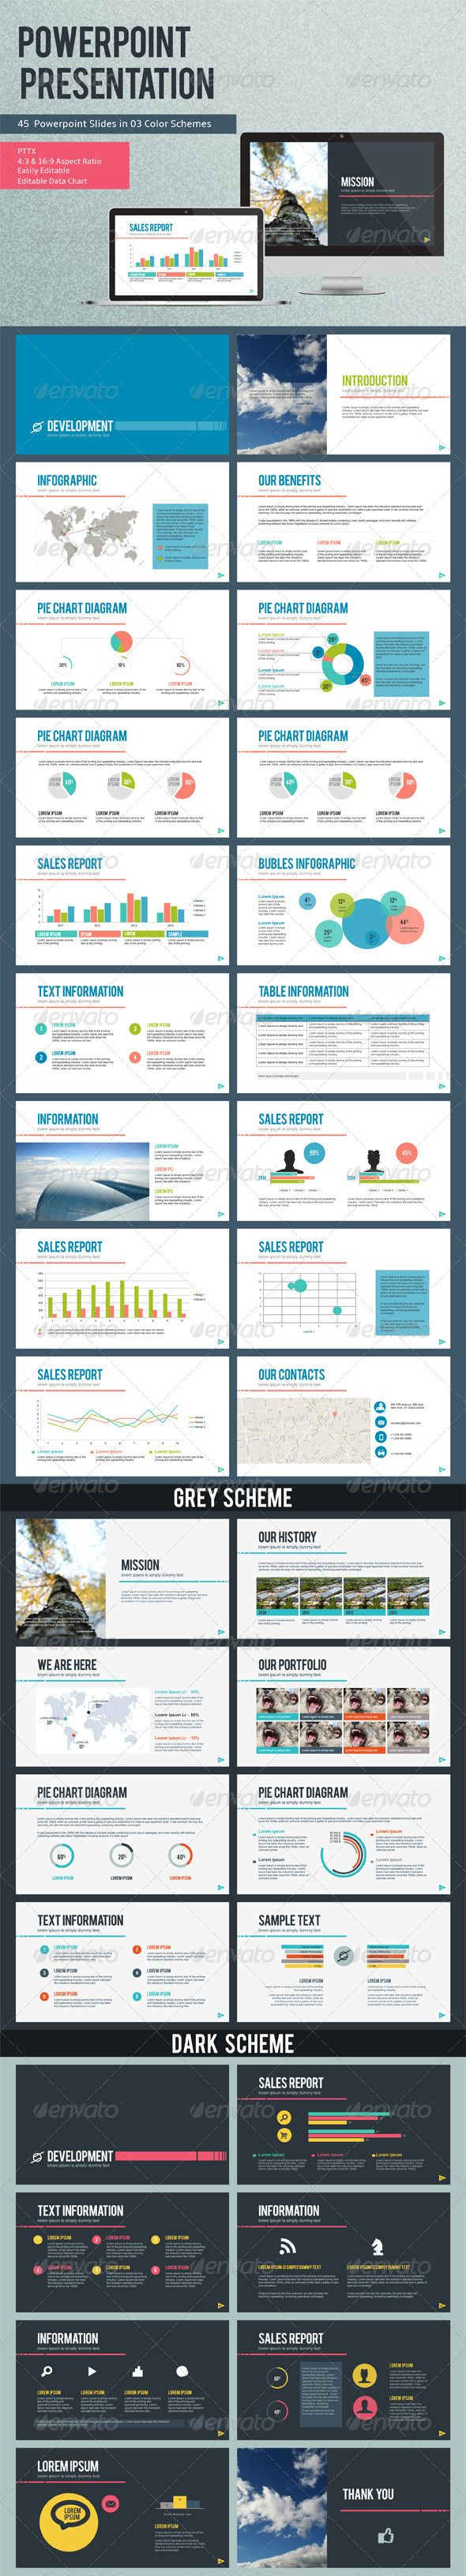 Development PowerPoint Presentation Template (Powerpoint Templates)